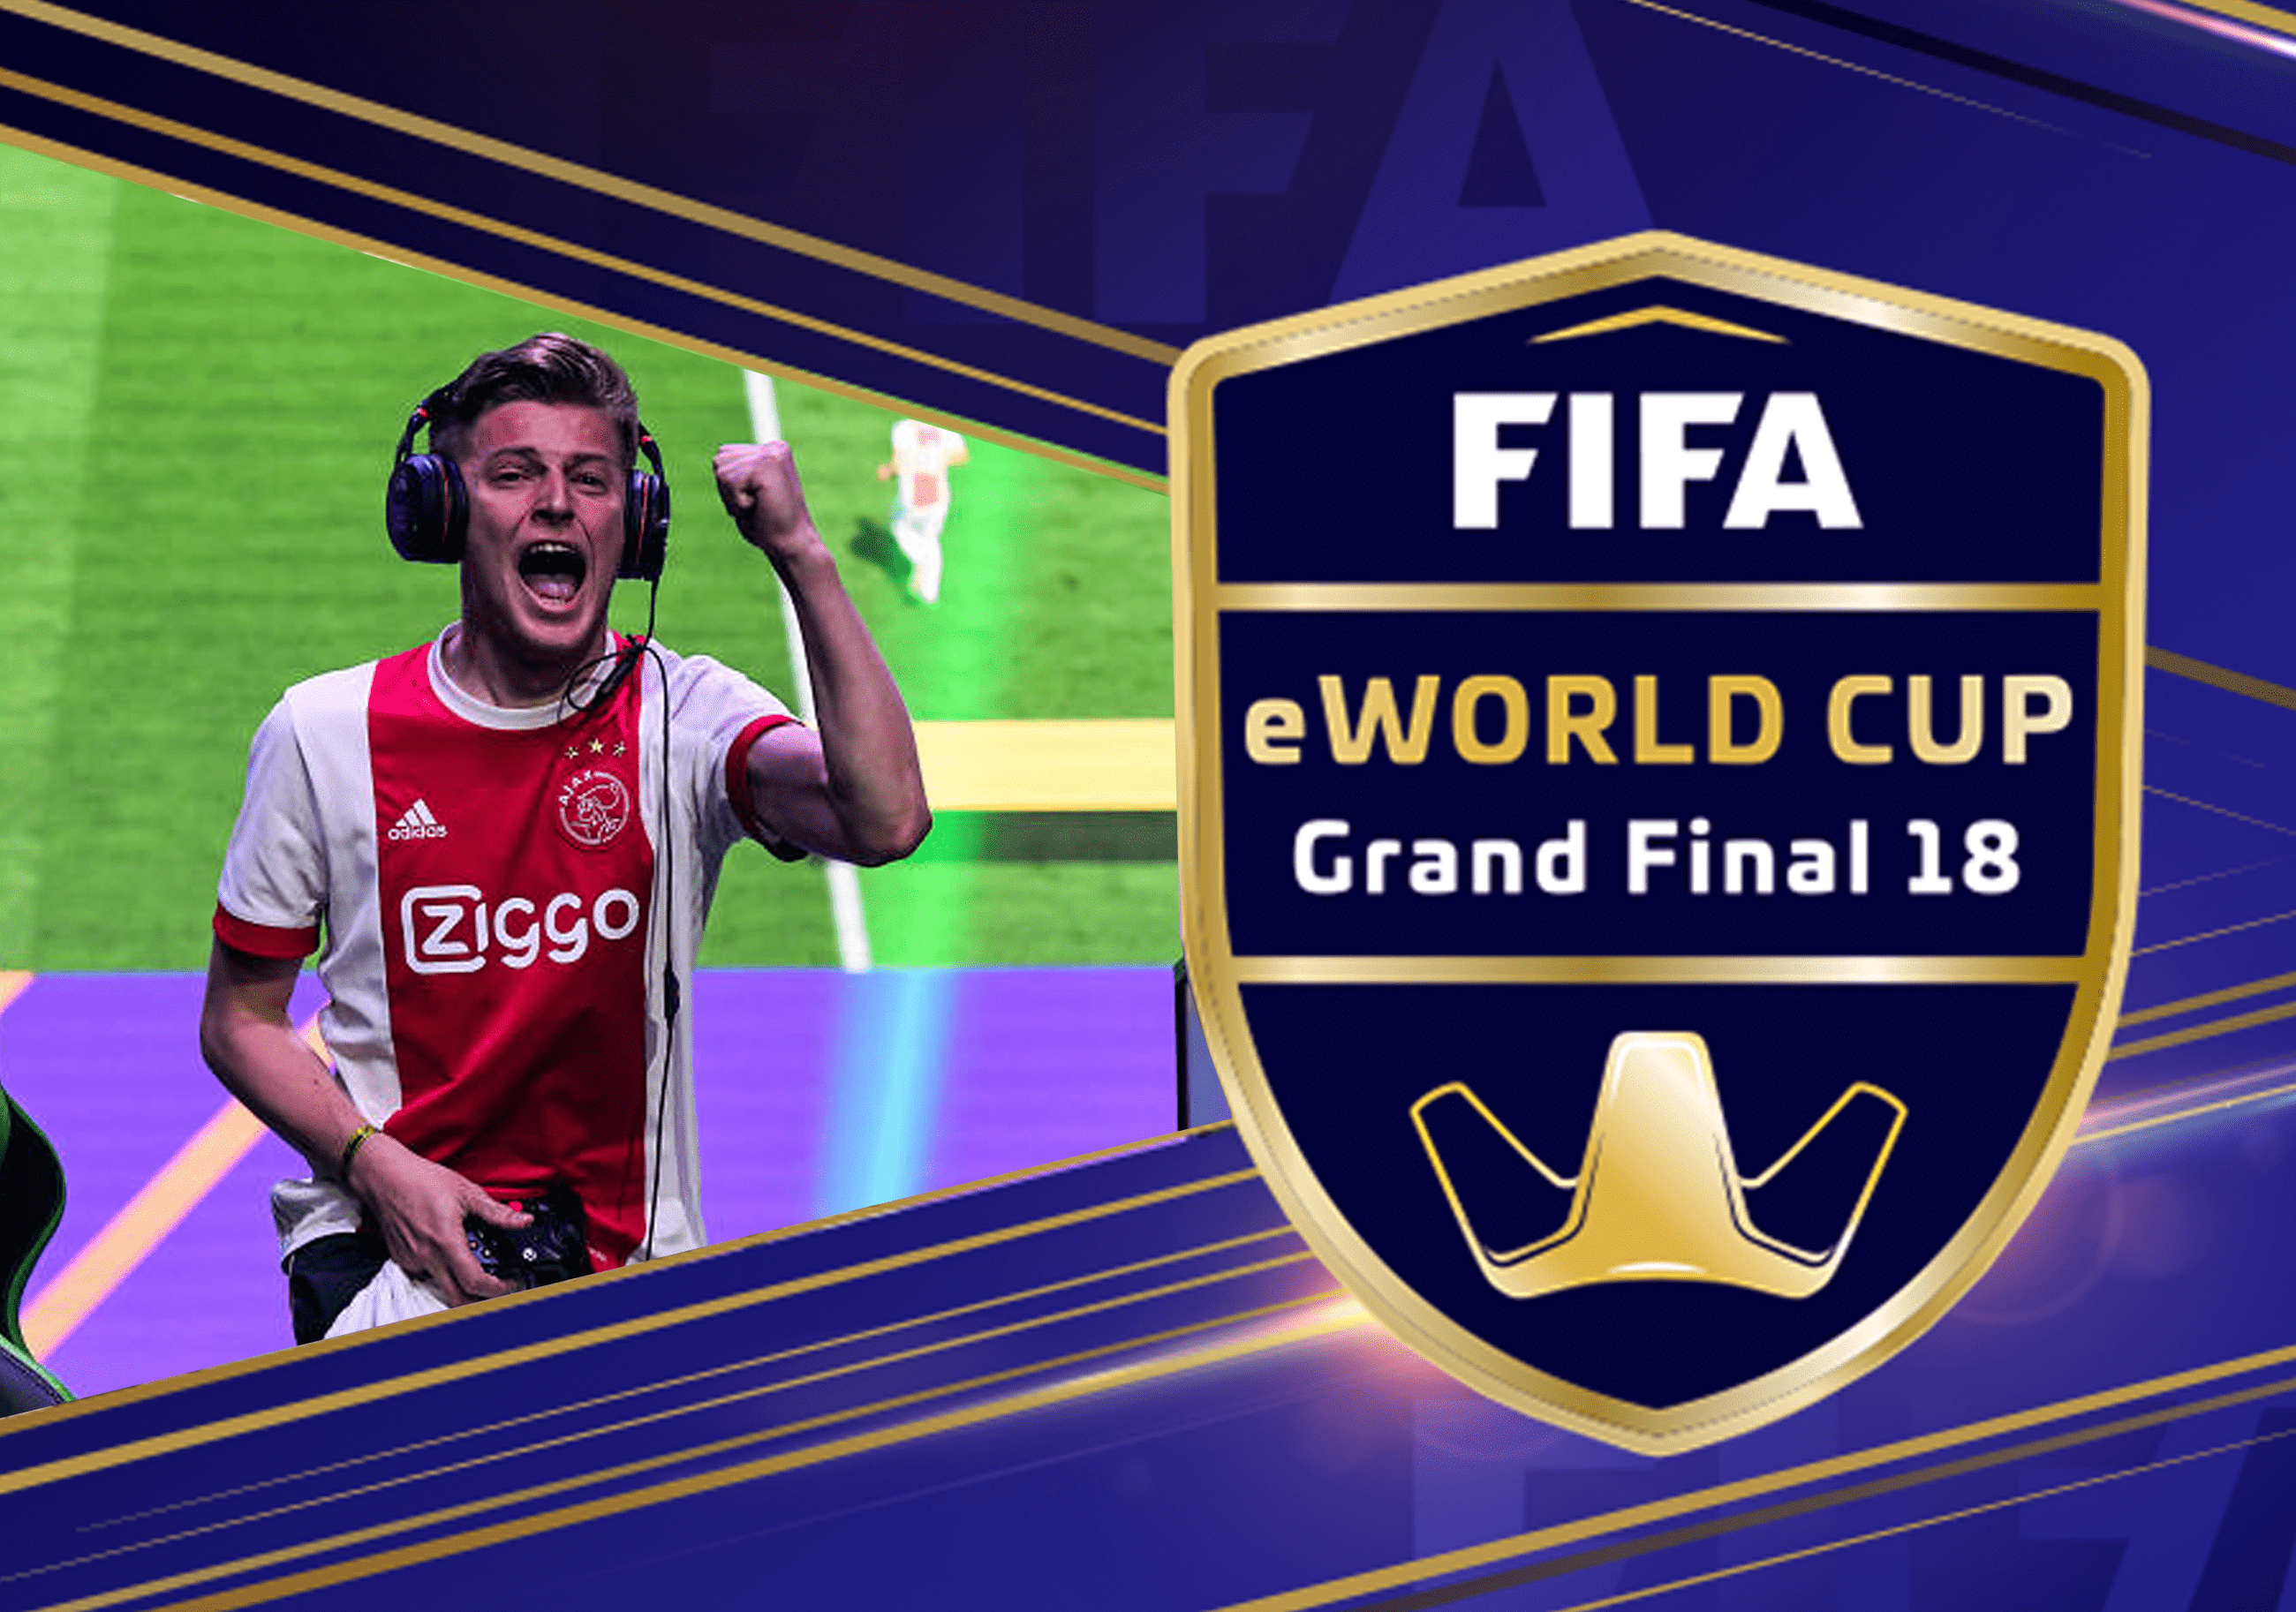 FIFA eWorld Cup 2018 Tournament promo with tournament Logo and player celebrating